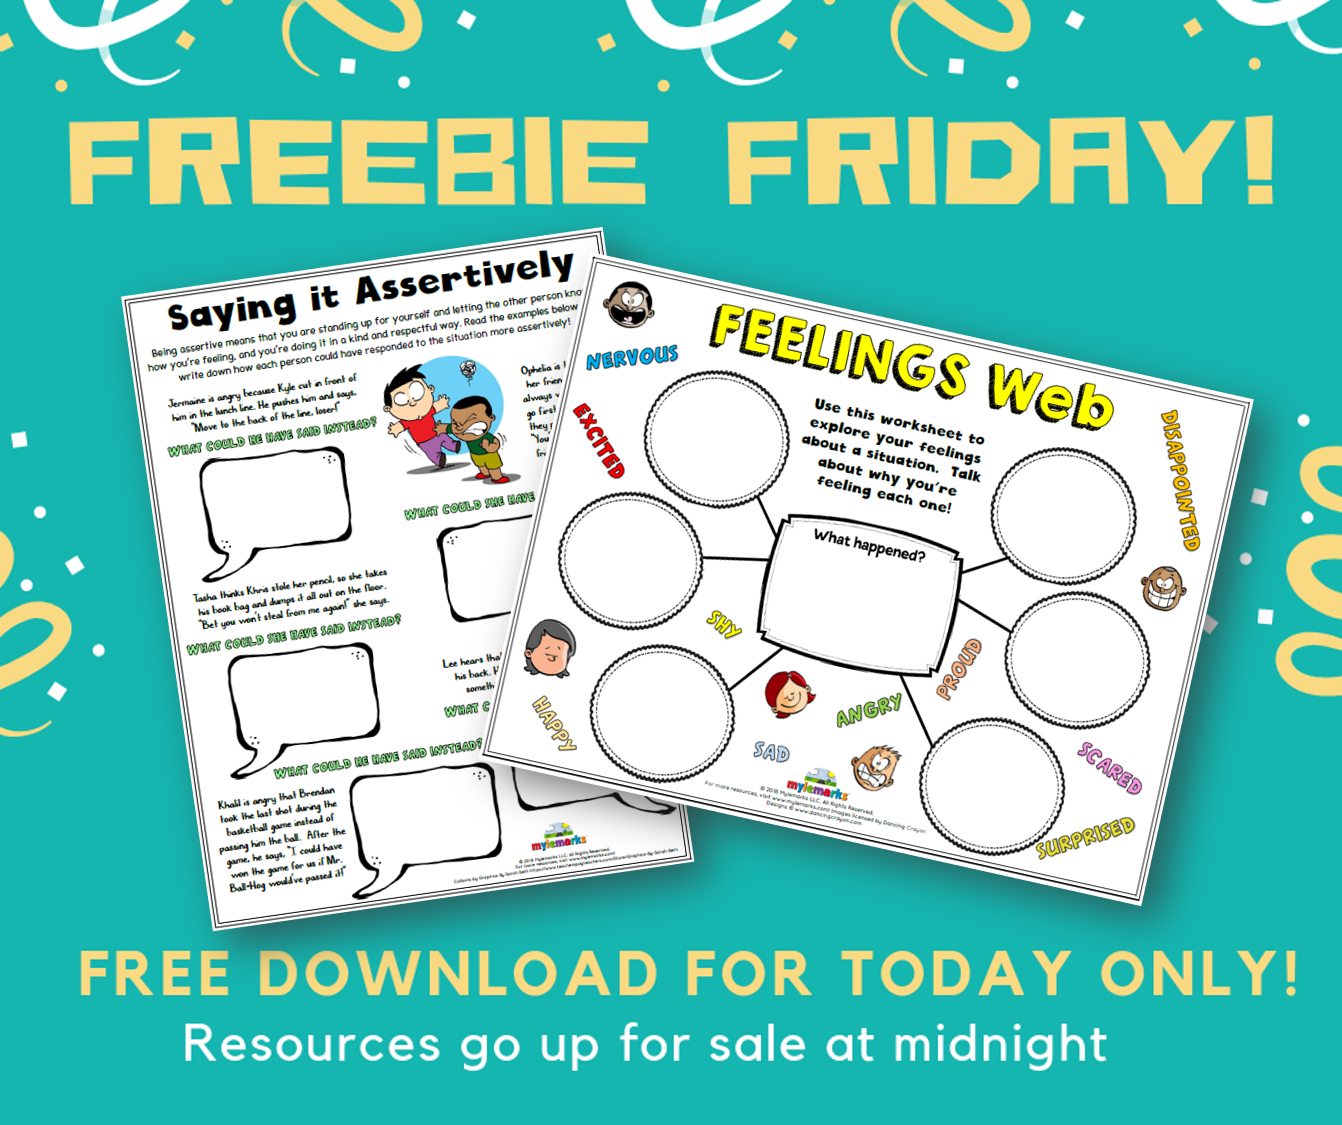 Freebie Friday Free Download For Today Only Share This